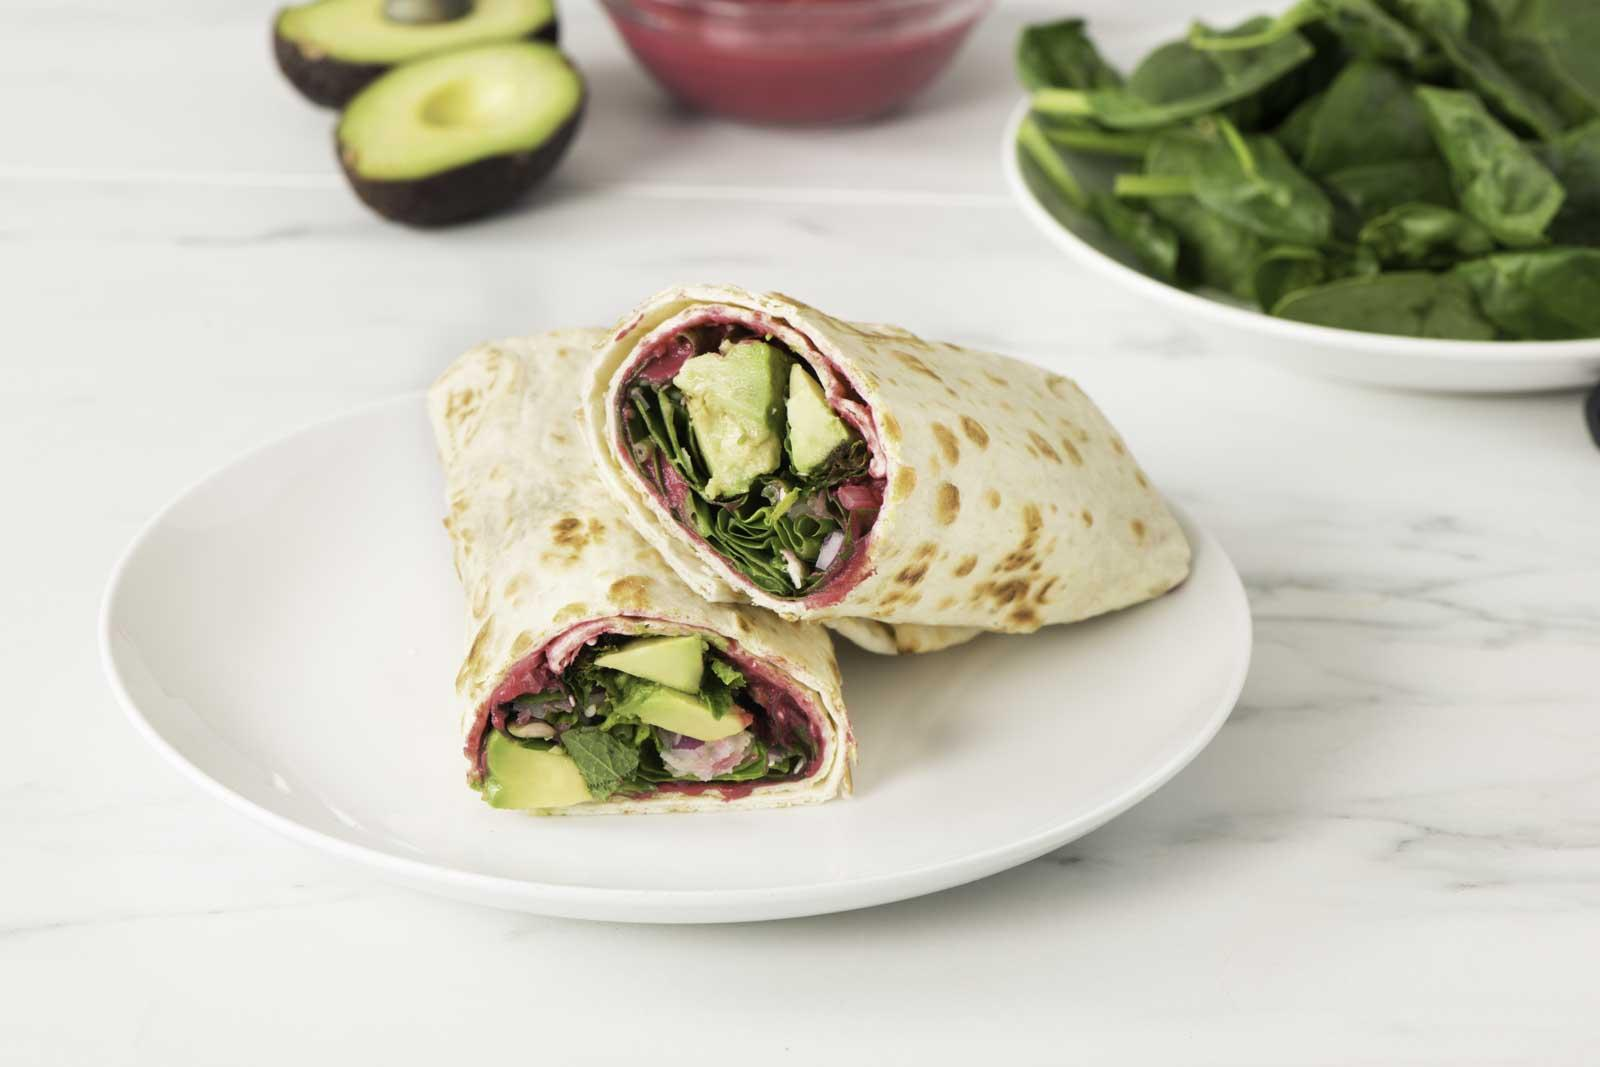 Spinach Wrap with Beet Hummus on Original Flatbread 025